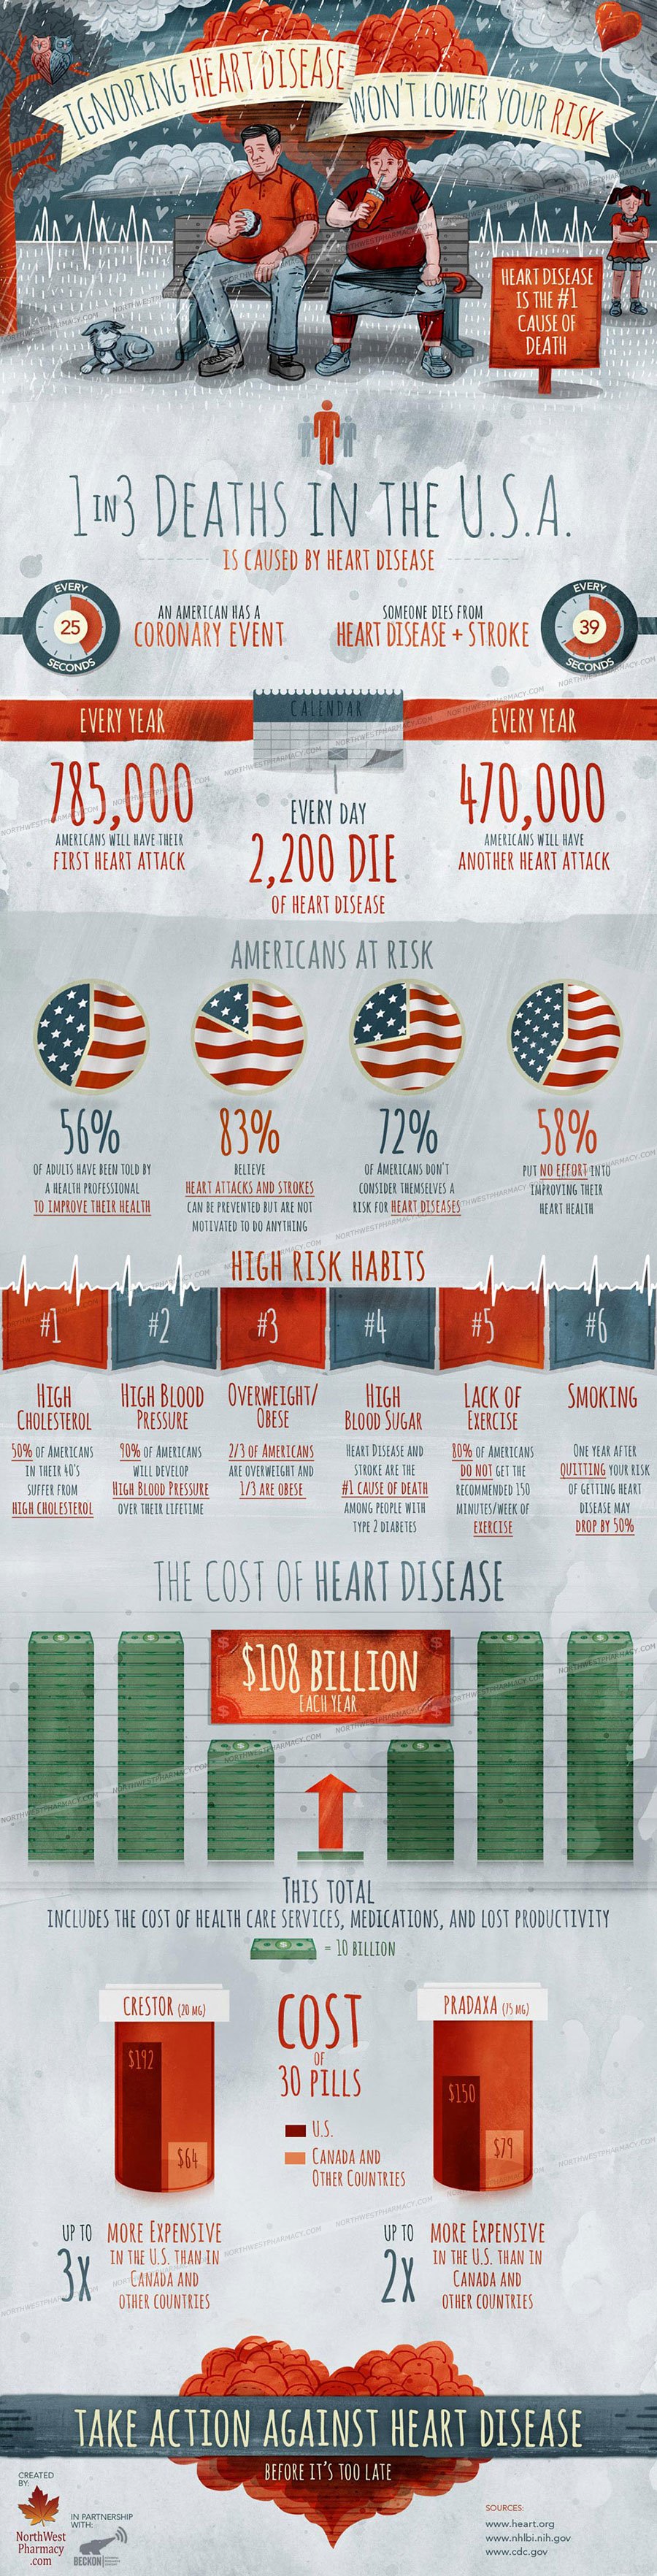 Deadly Habits that Lead to Heart Disease